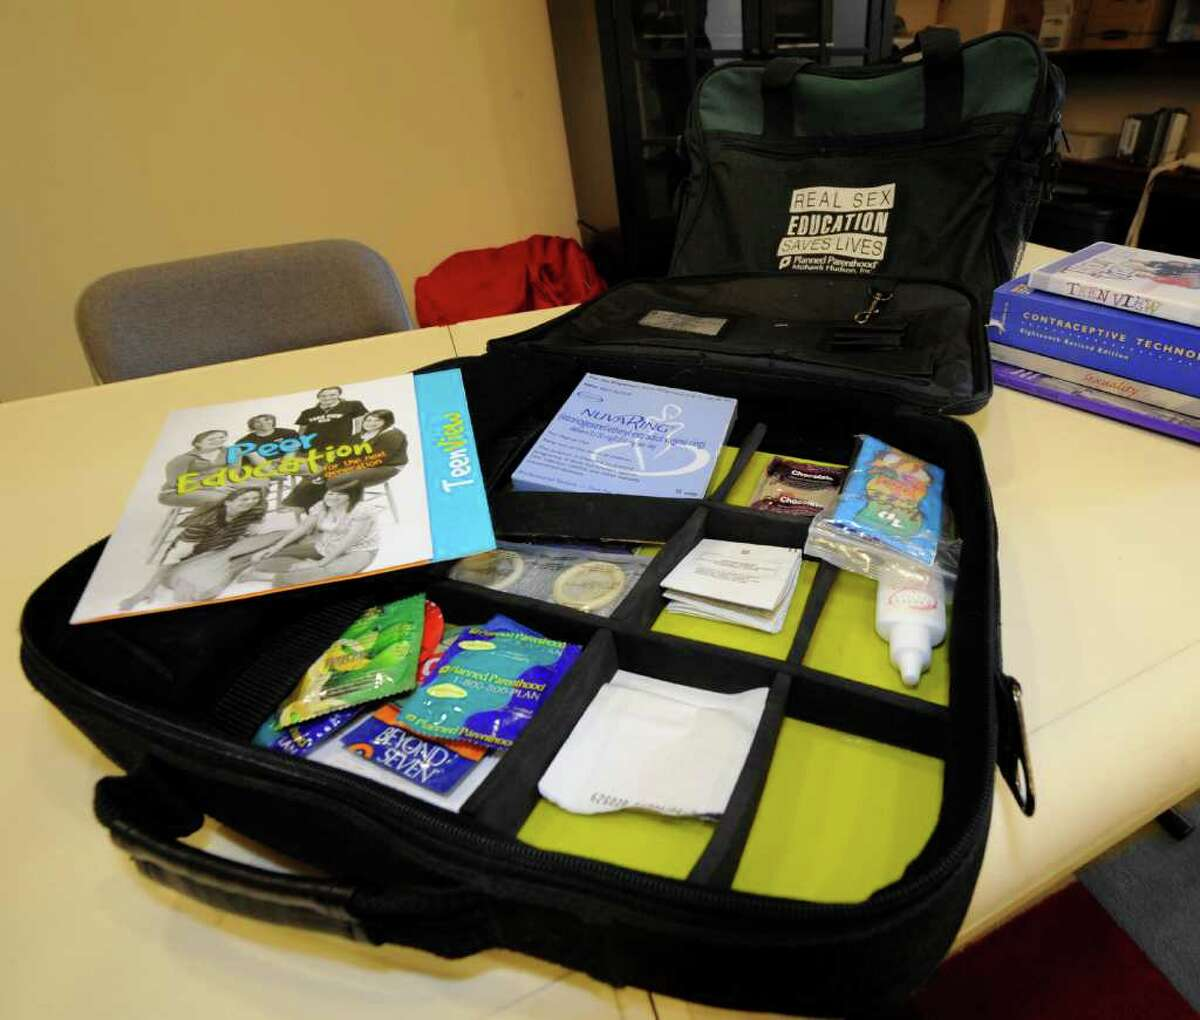 Darren Cosgrove's Educator's Kit he uses in education for Planned Parenthood Mohawk Hudson Inc. at his office in Saratoga Springs, N.Y. Jan 3, 2012. (Skip Dickstein / Times Union)